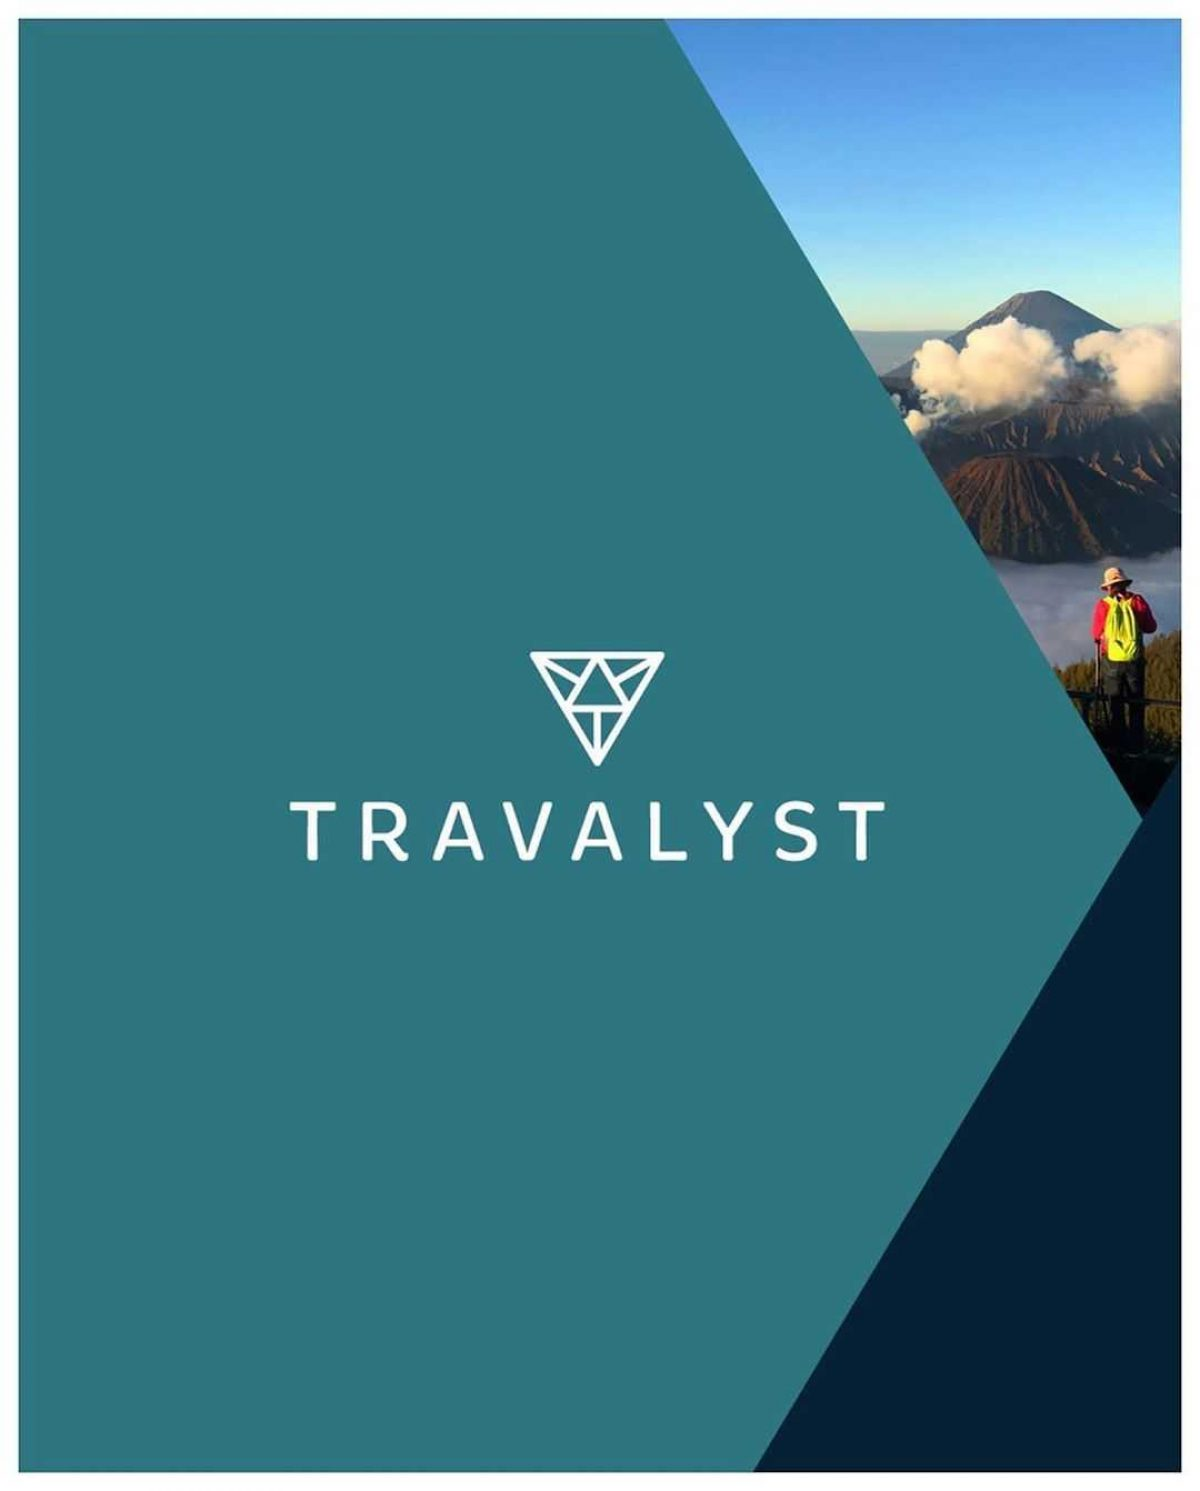 Tourism is dead, long live Tourism! Insights from the Travalyst Global Summit, July 30, 2020.